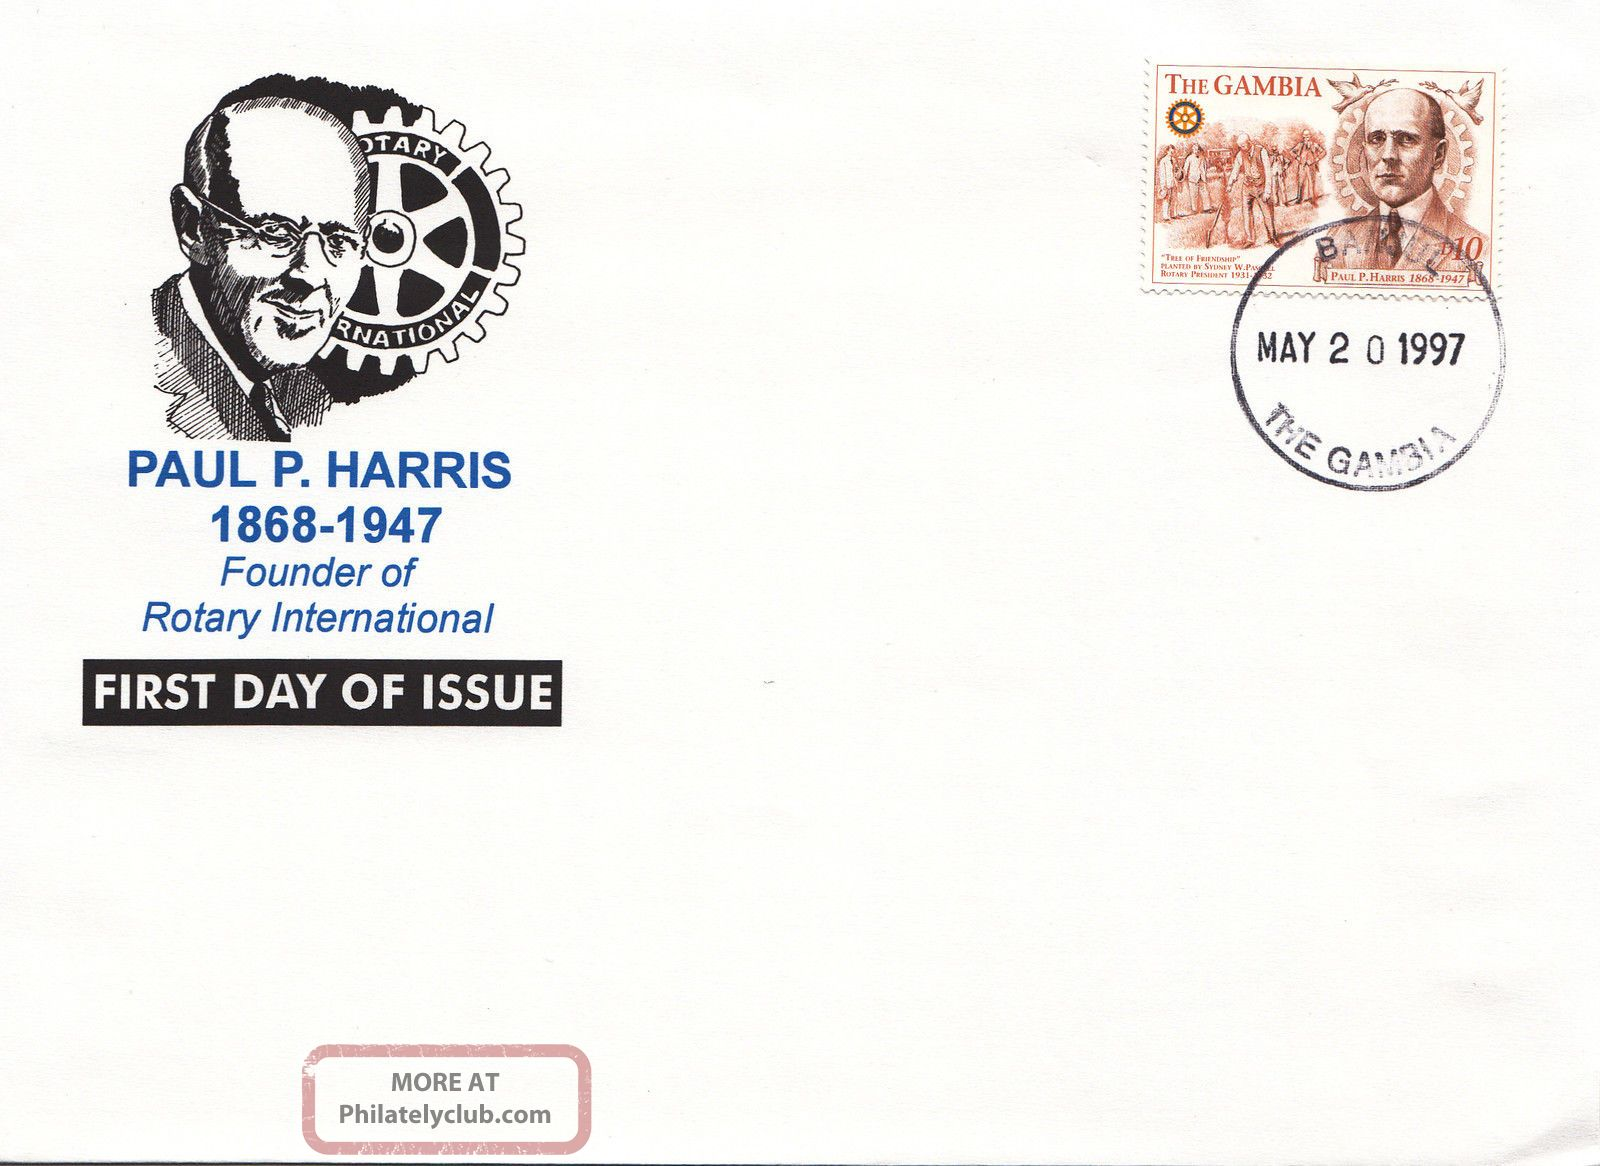 (22457) Gambia - Fdc Rotary International - Paul P Harris 1997 Africa photo